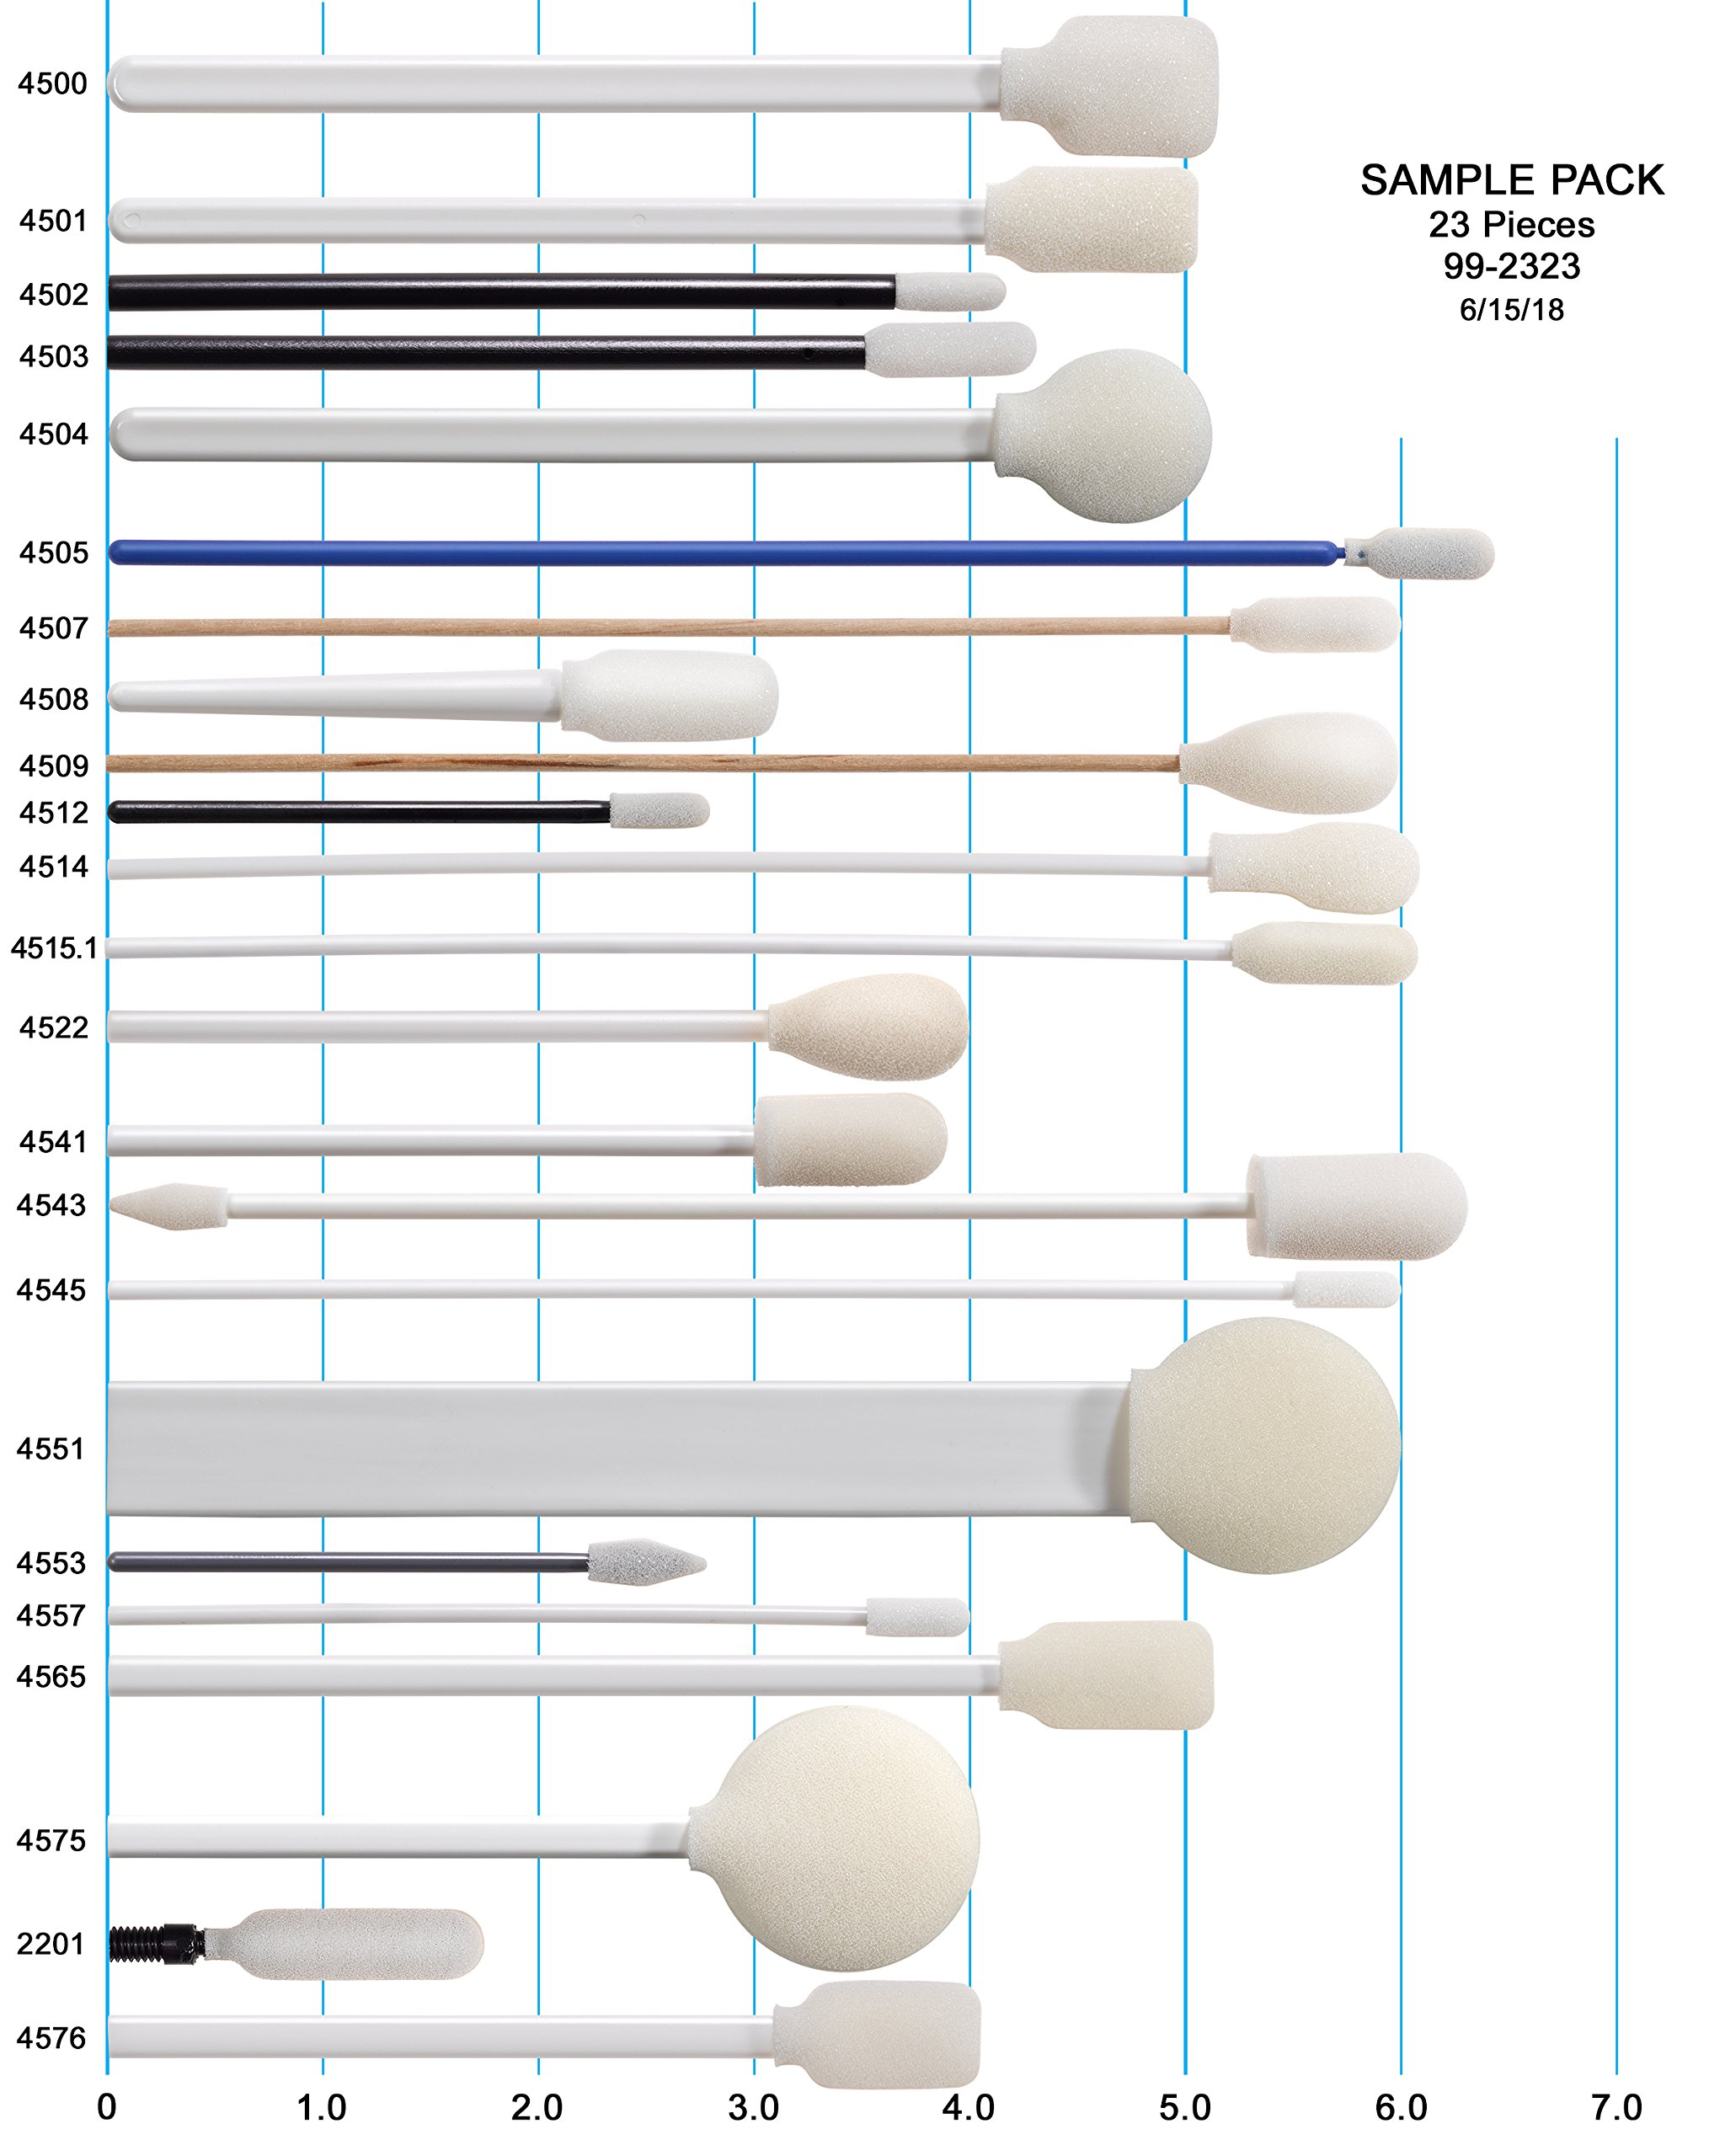 Mixed Bag of Best Selling Foam Swabs by Swab-its - All Shapes and Sizes Included by SWAB-ITS